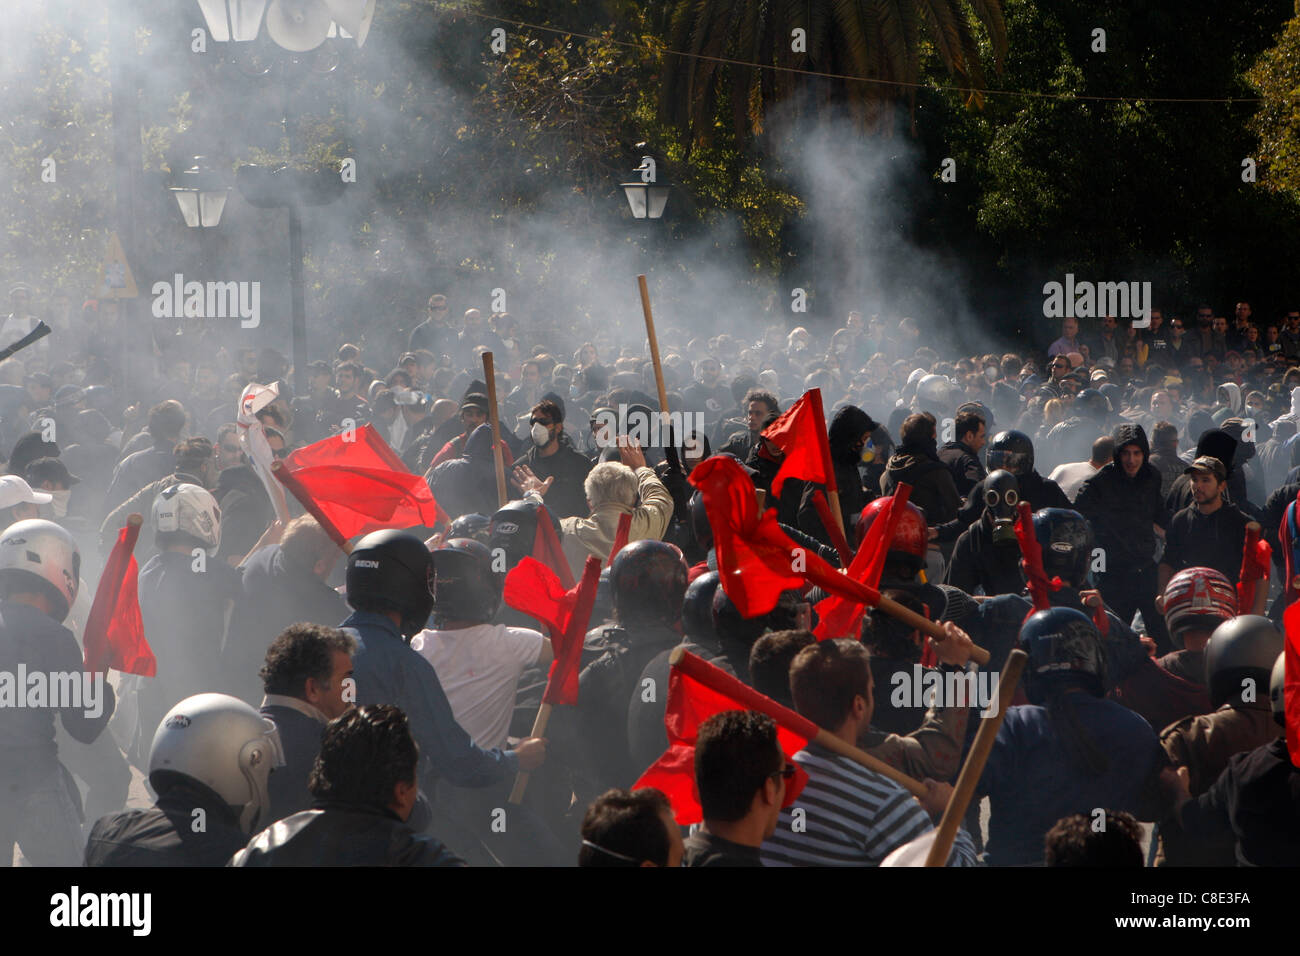 20 October 2011 Athens Greece. Clashes between protesters during the second day protests against the new austerity - Stock Image